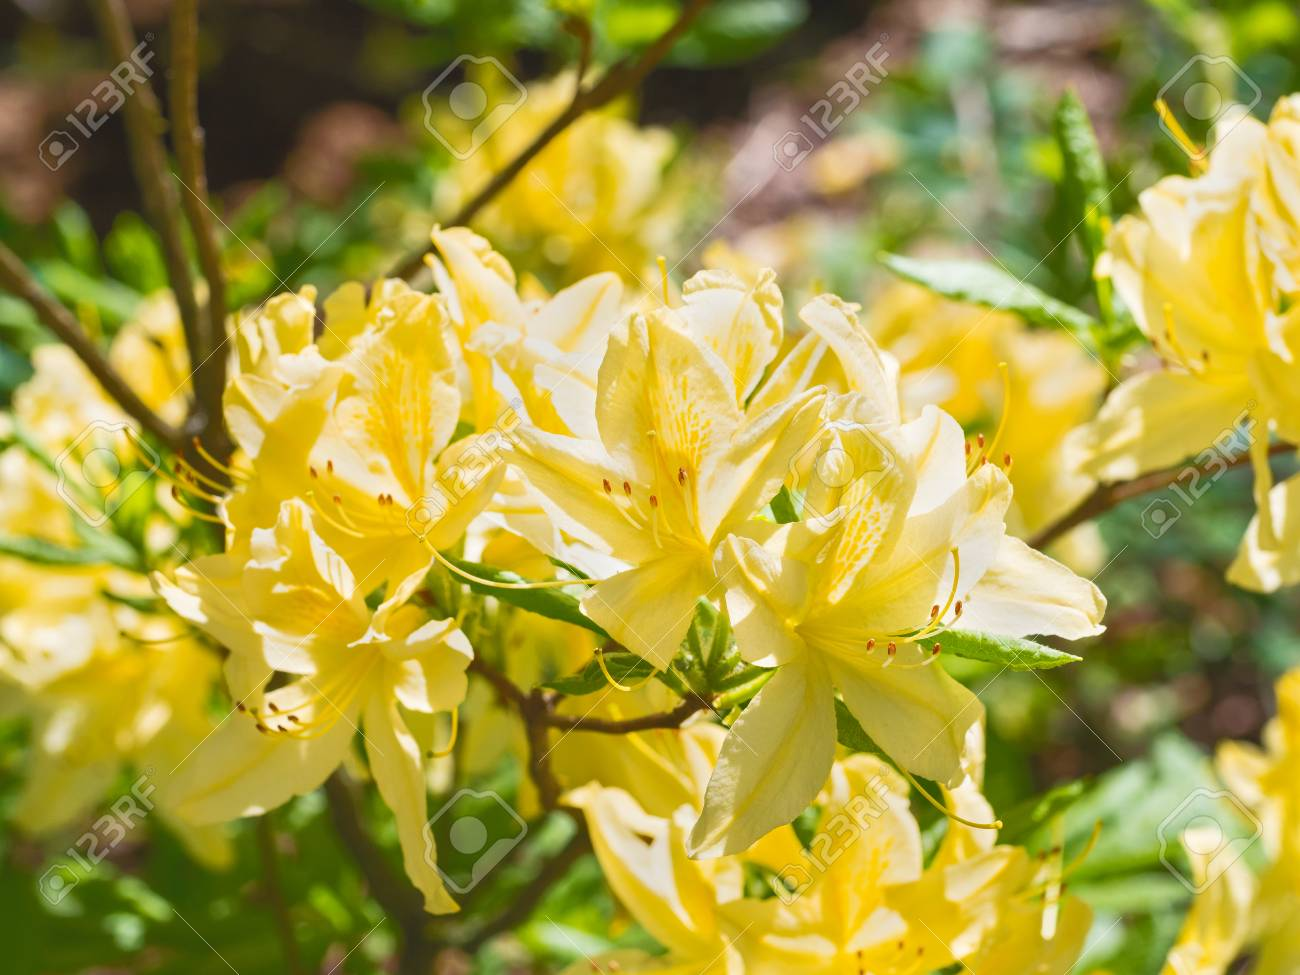 Yellow Flowers Of A Rhododendron On A Branch On Sunlight Stock